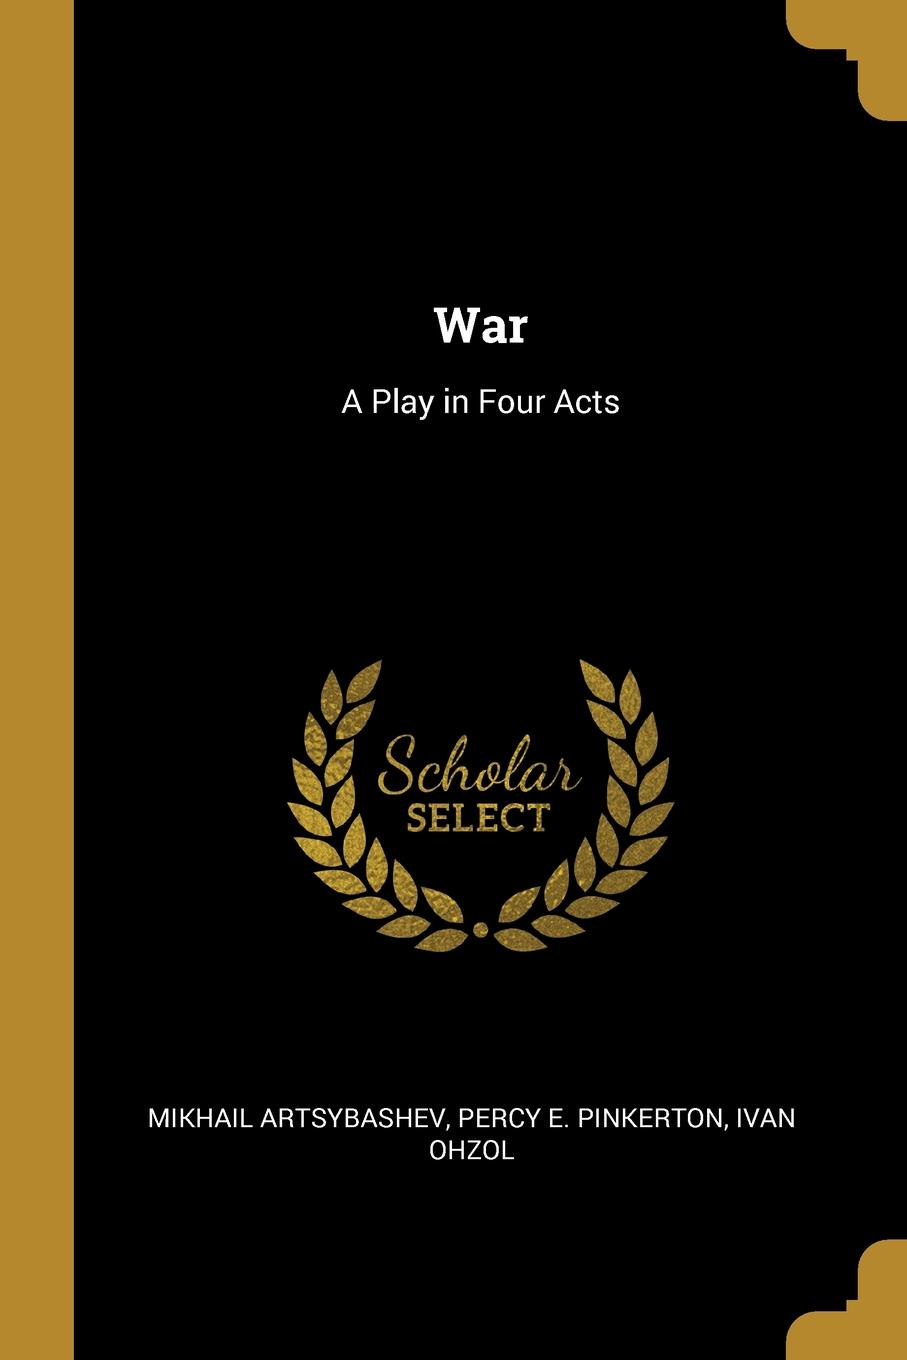 War. A Play in Four Acts